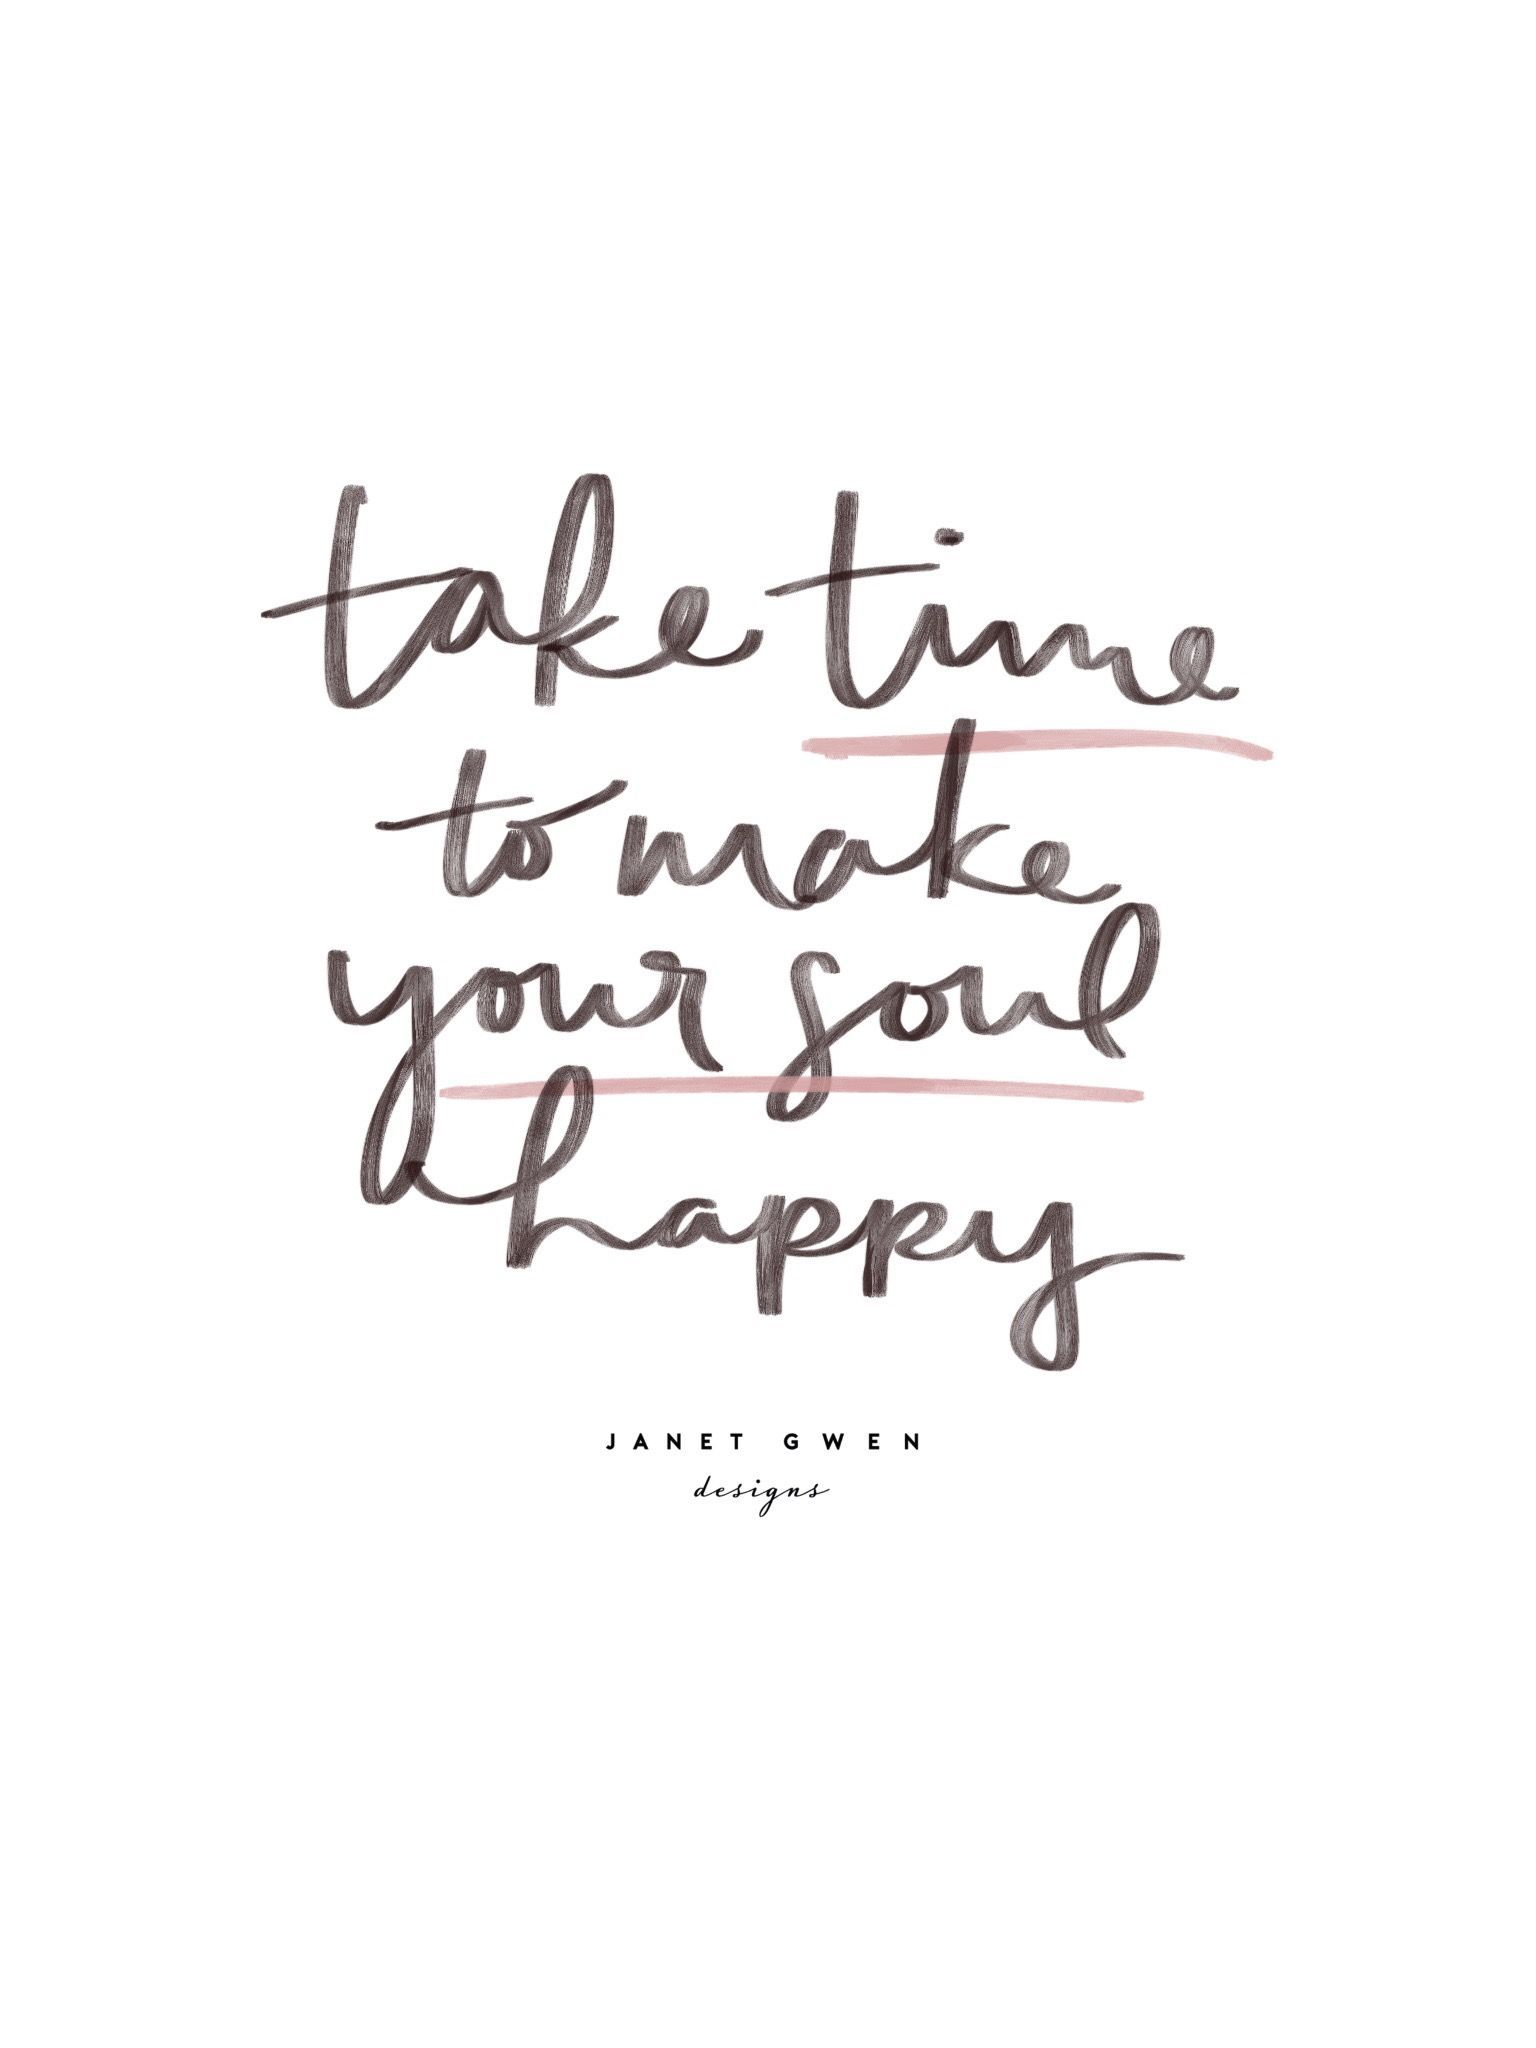 Quotes on Self Care and Taking Time To Do What You Want!